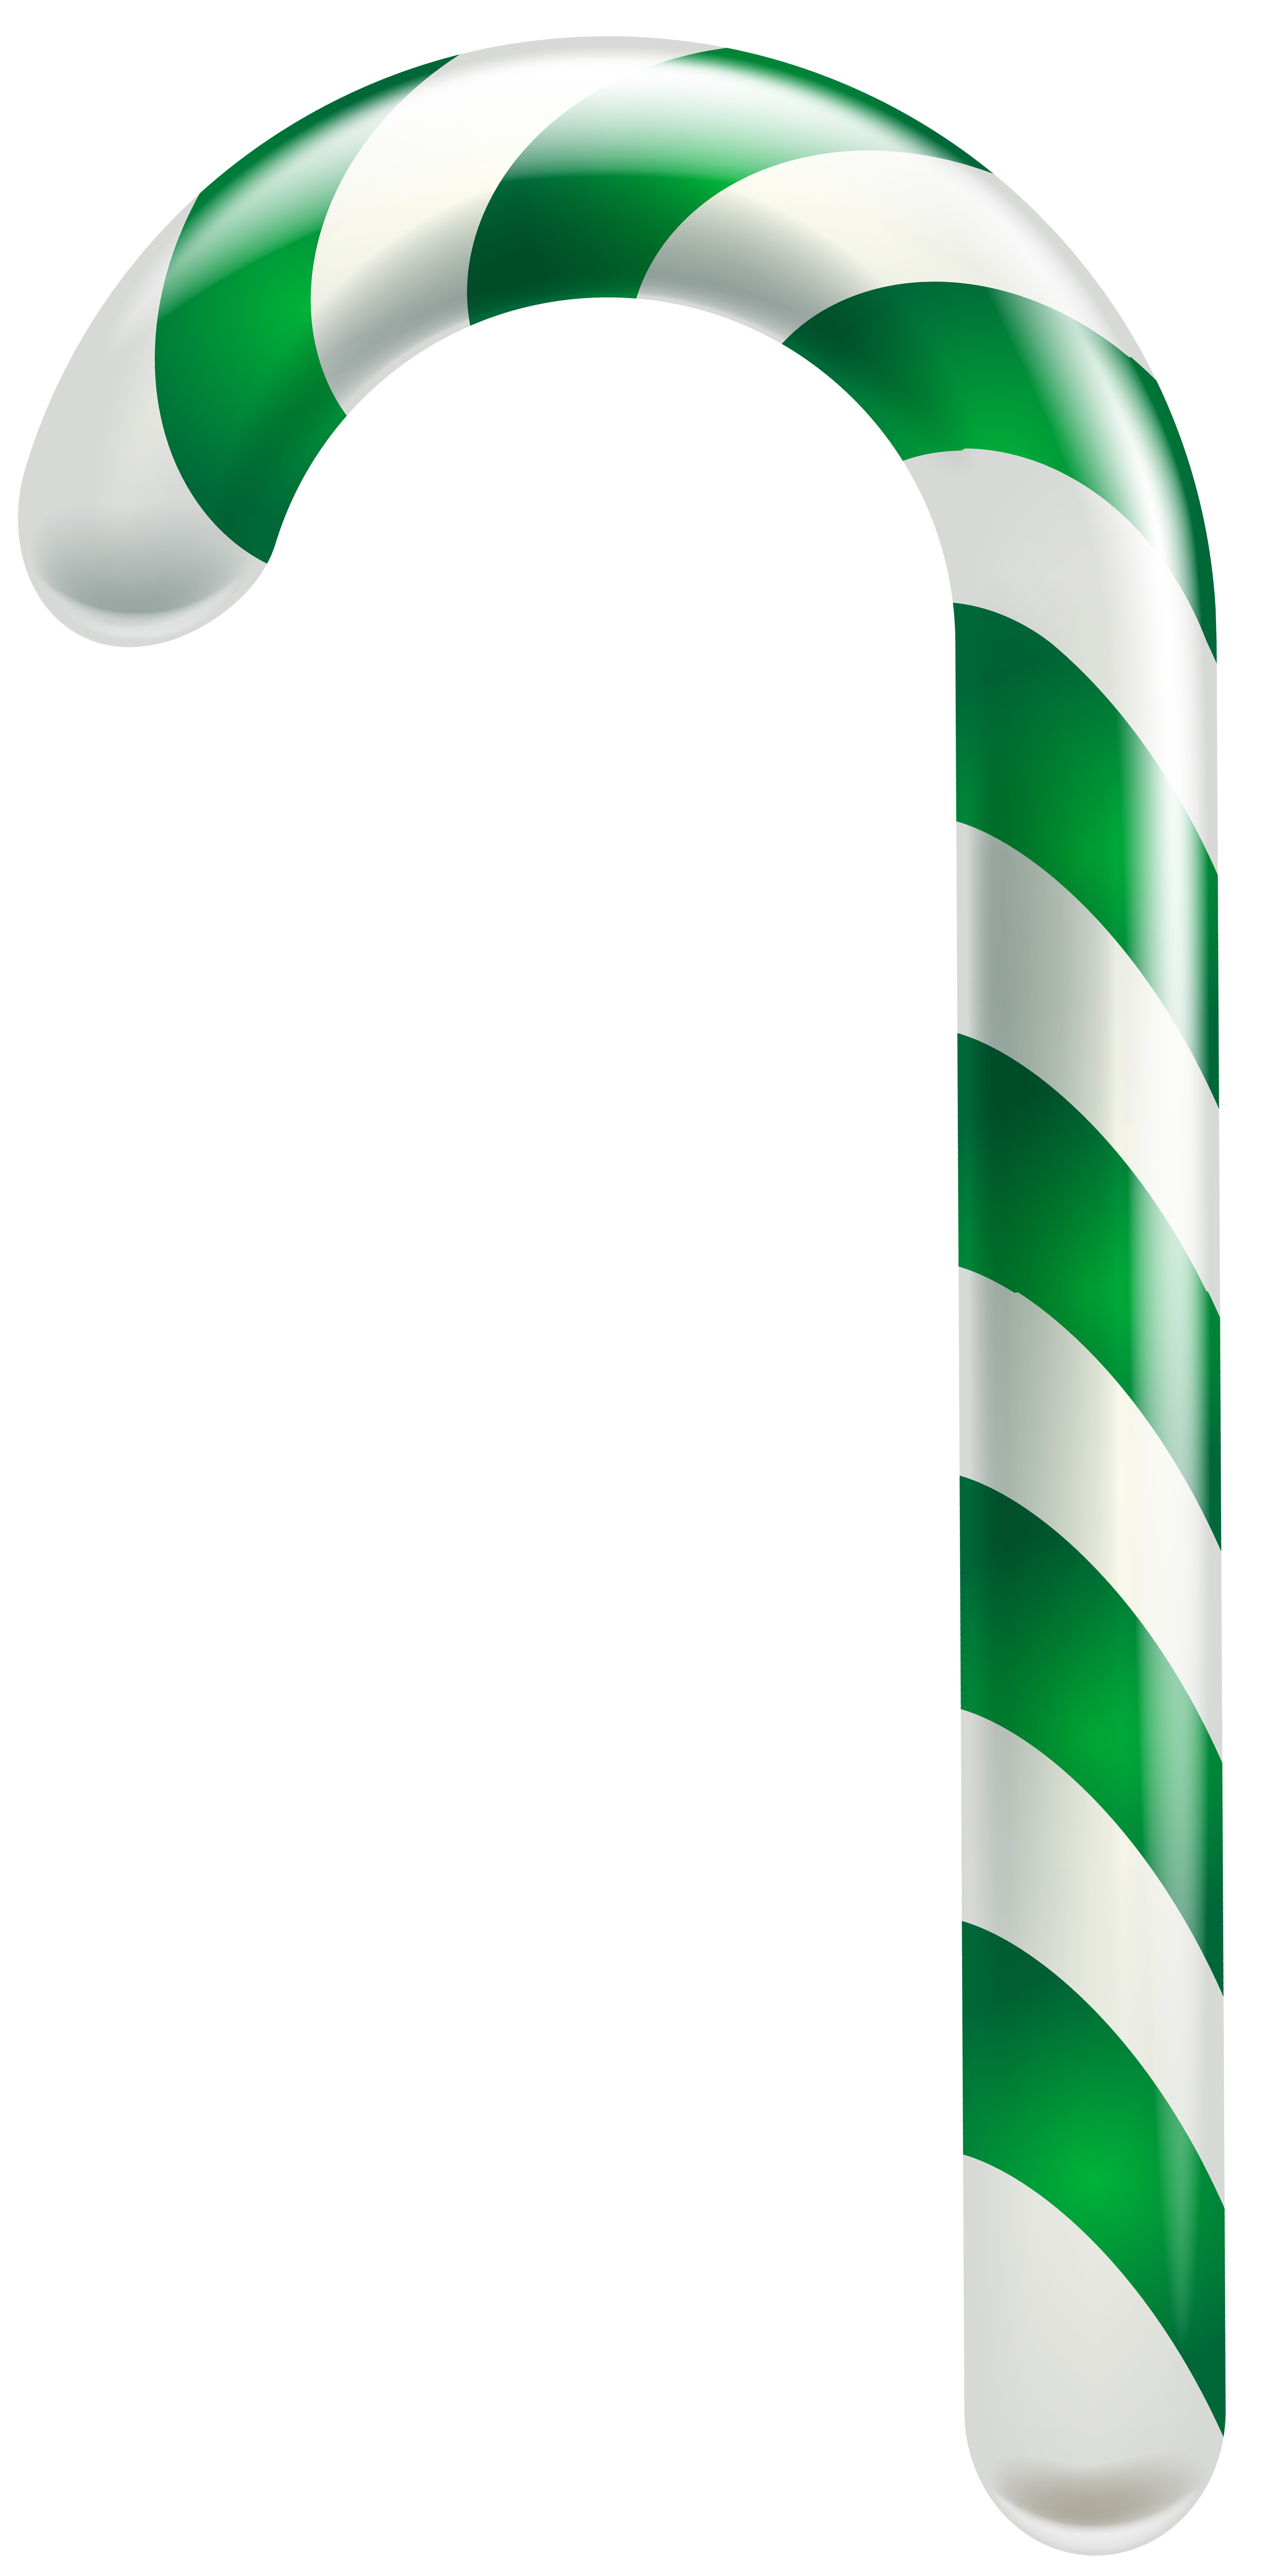 png freeuse Canes clipart cand. Green spearmint candy canetransparent.